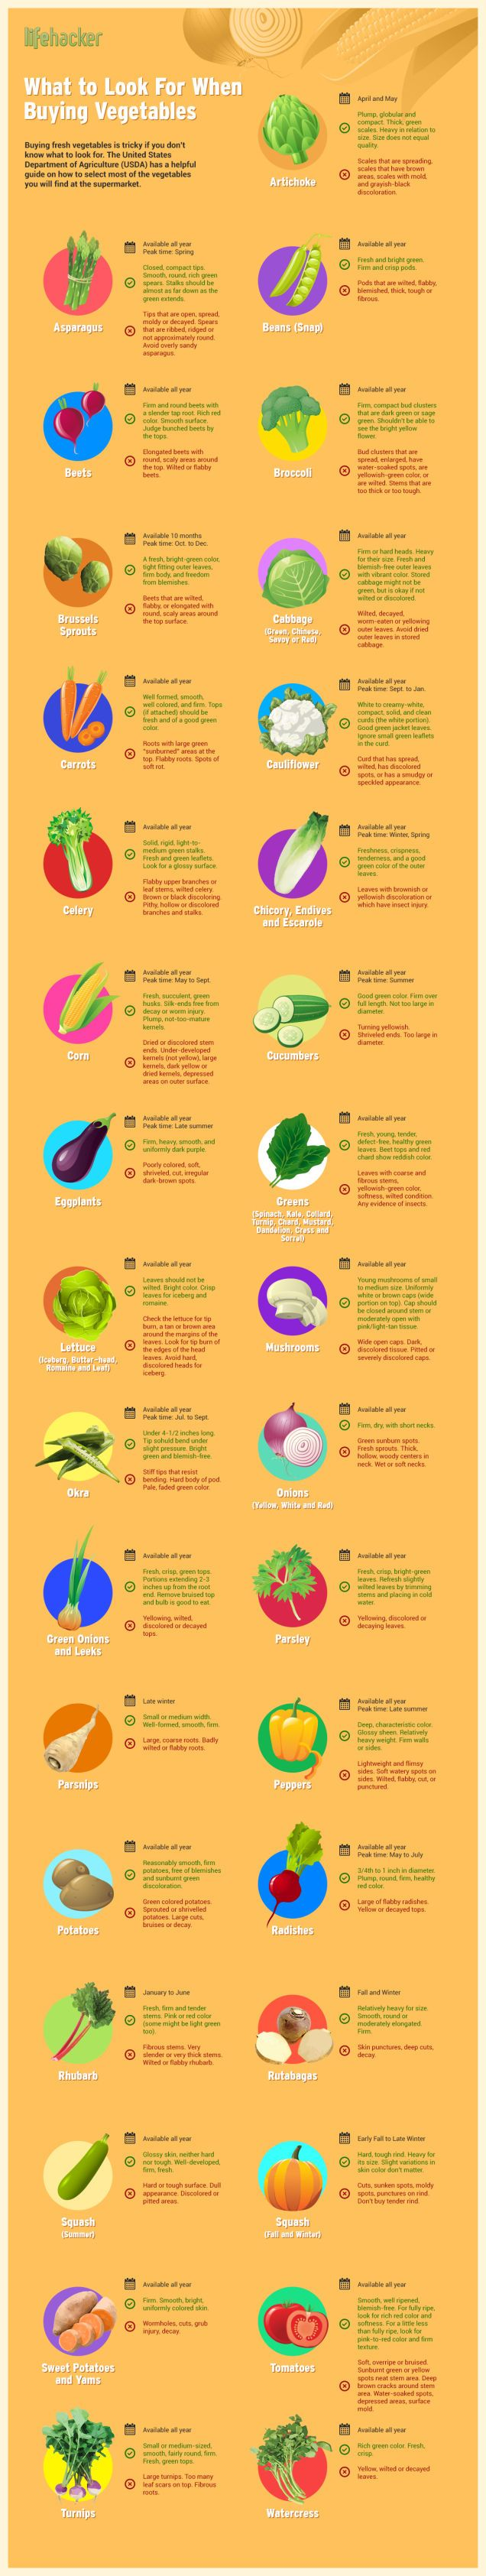 Can't tell which tomatoes are ripe or if that lettuce is fresh? This infographic tells you what to look for when buying vegetables